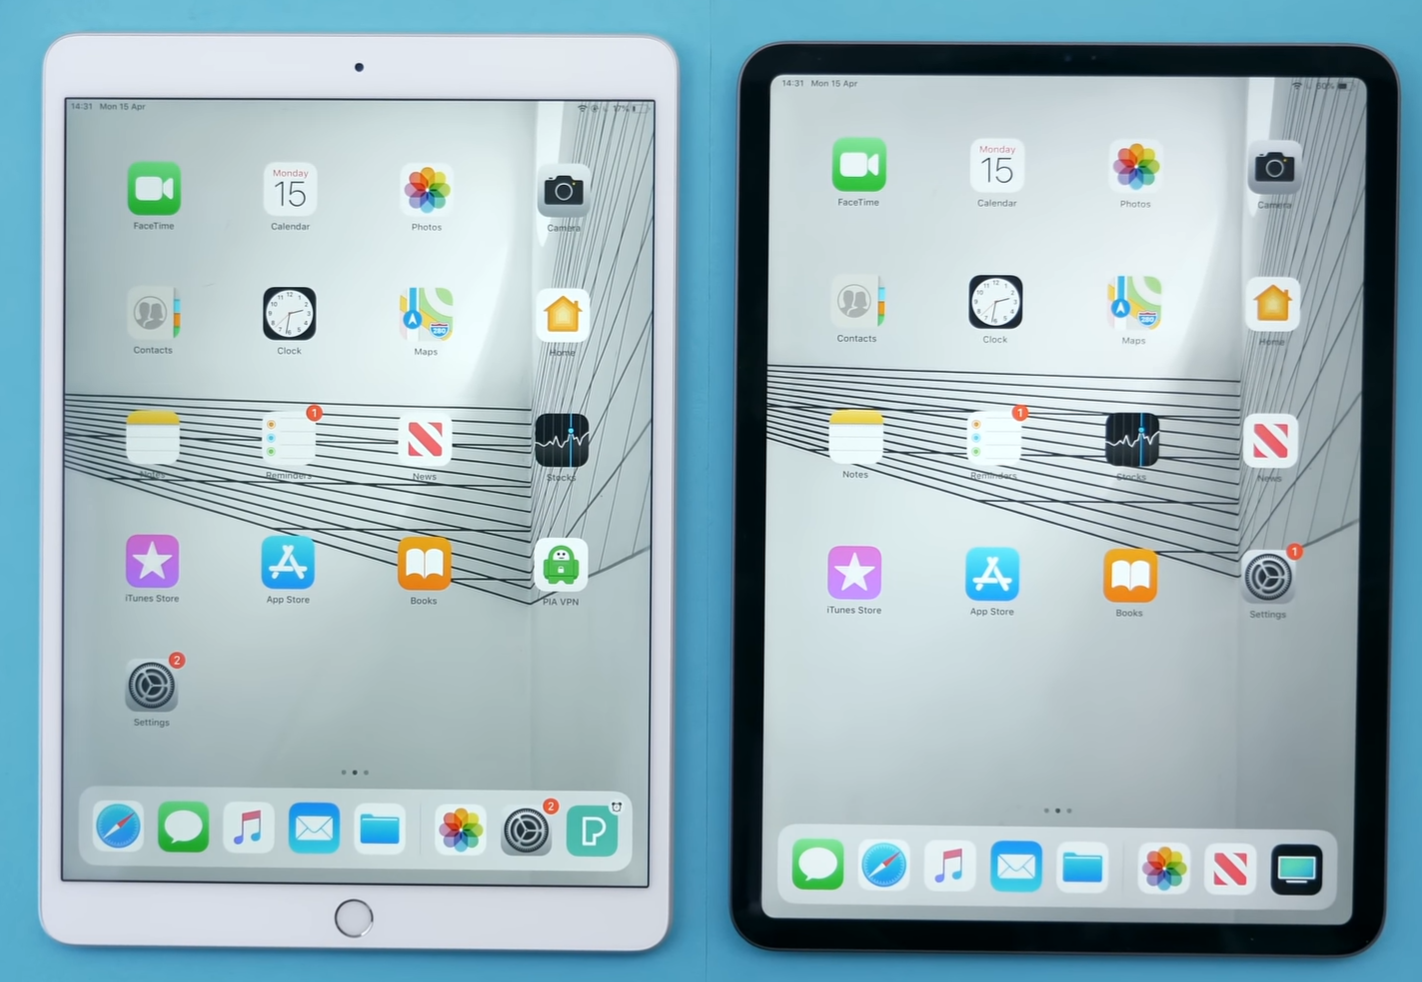 Design comparison between the Air 3 and the 2018 iPad Pro